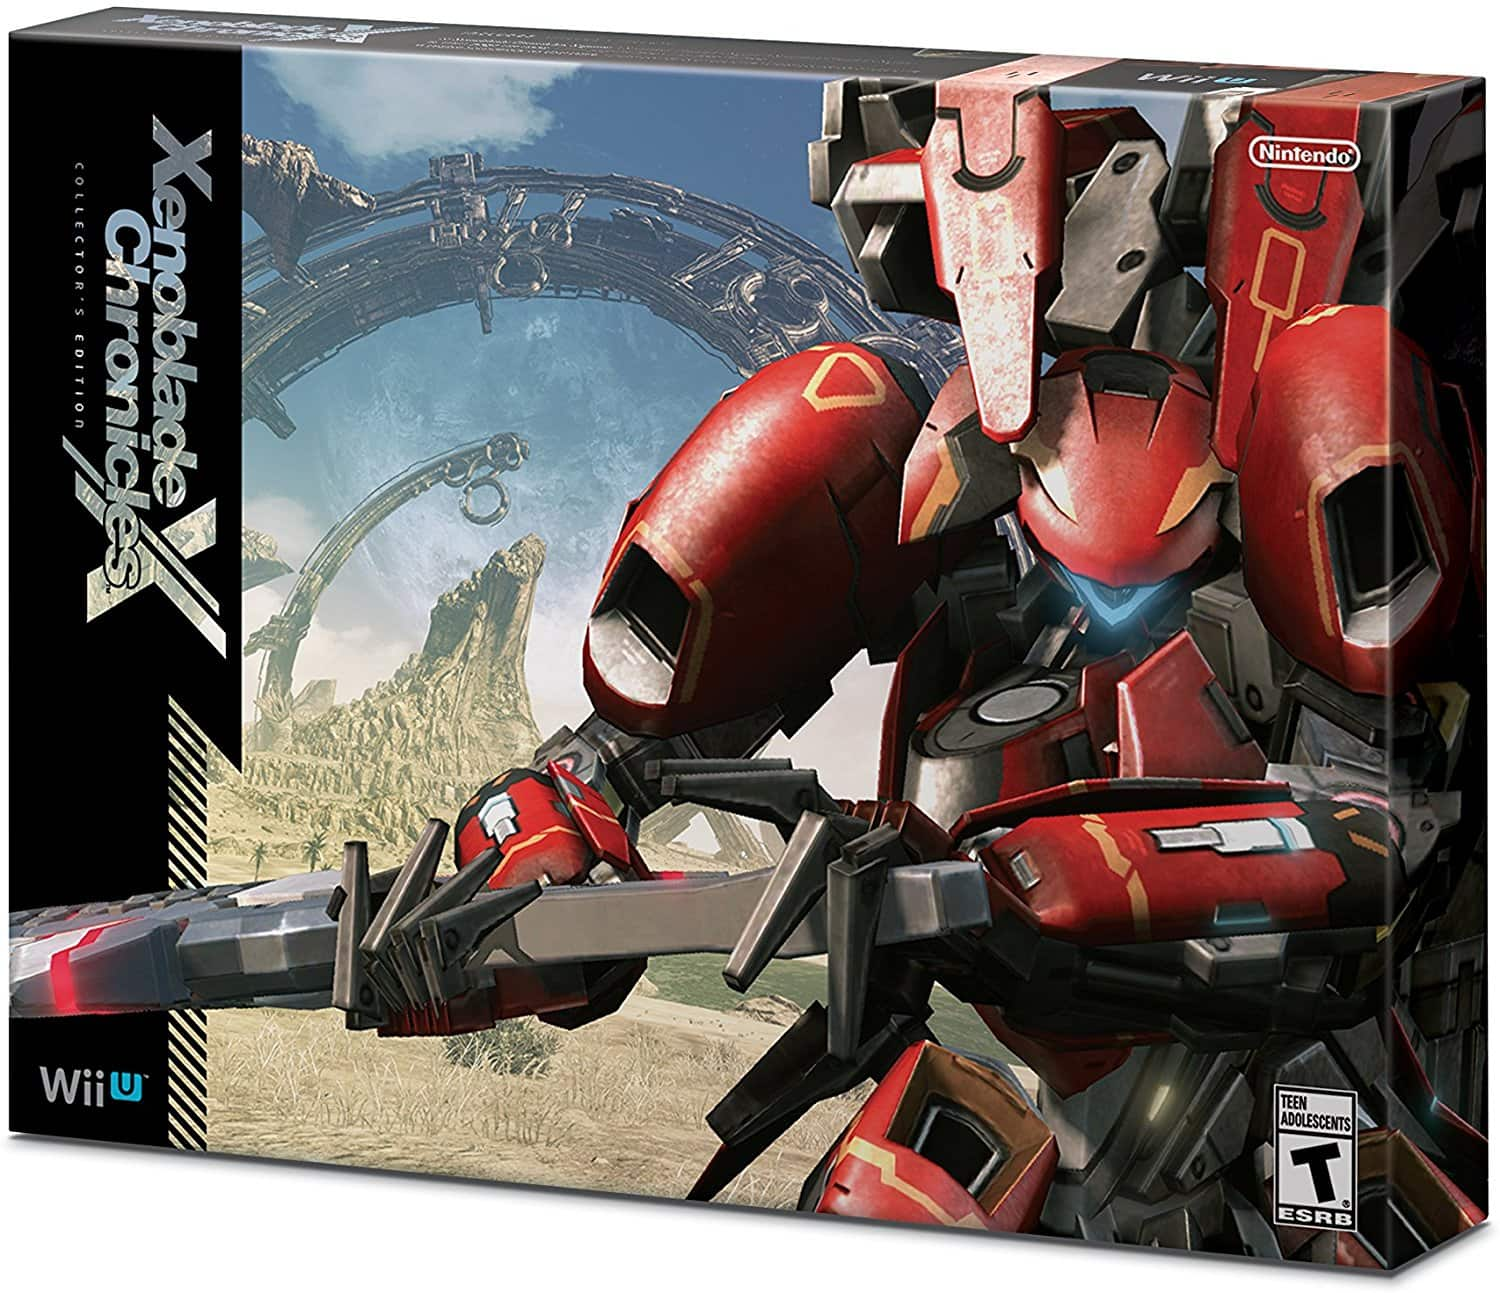 Xenoblade Chronicles X Special Edition for $45 at Nintendo Online Store